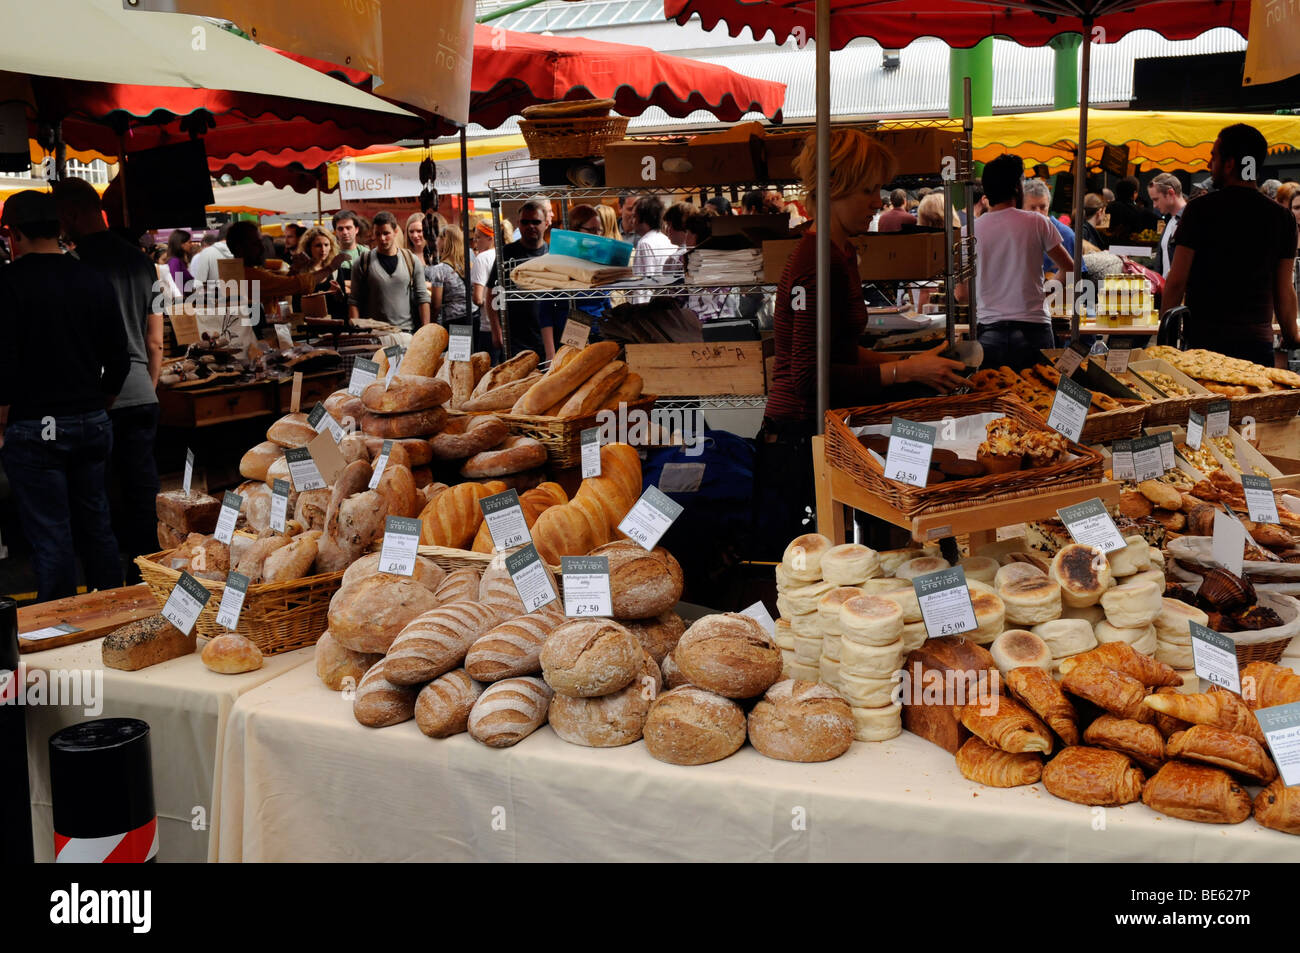 Bread stall in Jubilee Market, part of Southwark's  Borough Market, London SE1 - Stock Image